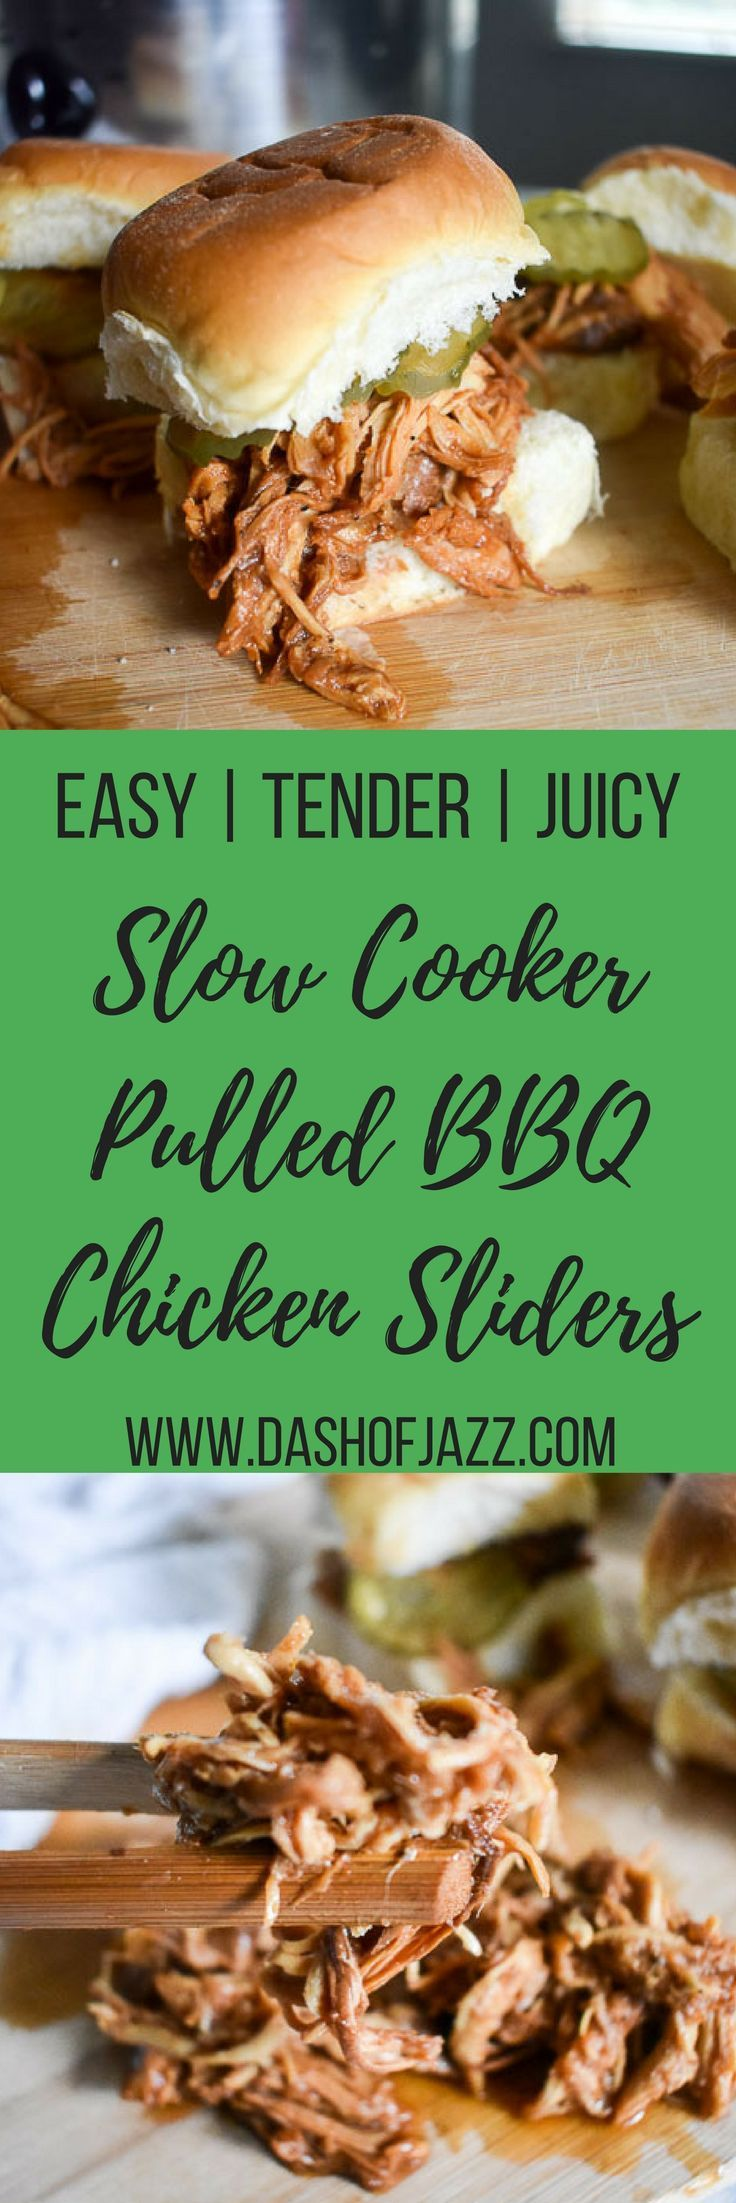 These slow cooker pulled BBQ chicken sliders are as easy as they are tender, juicy, and delicious. Make this set-it-and-forget-it recipe for your next cookout, tailgate, or dinner tonight! Recipe by Dash of Jazz via @dashofjazzblog